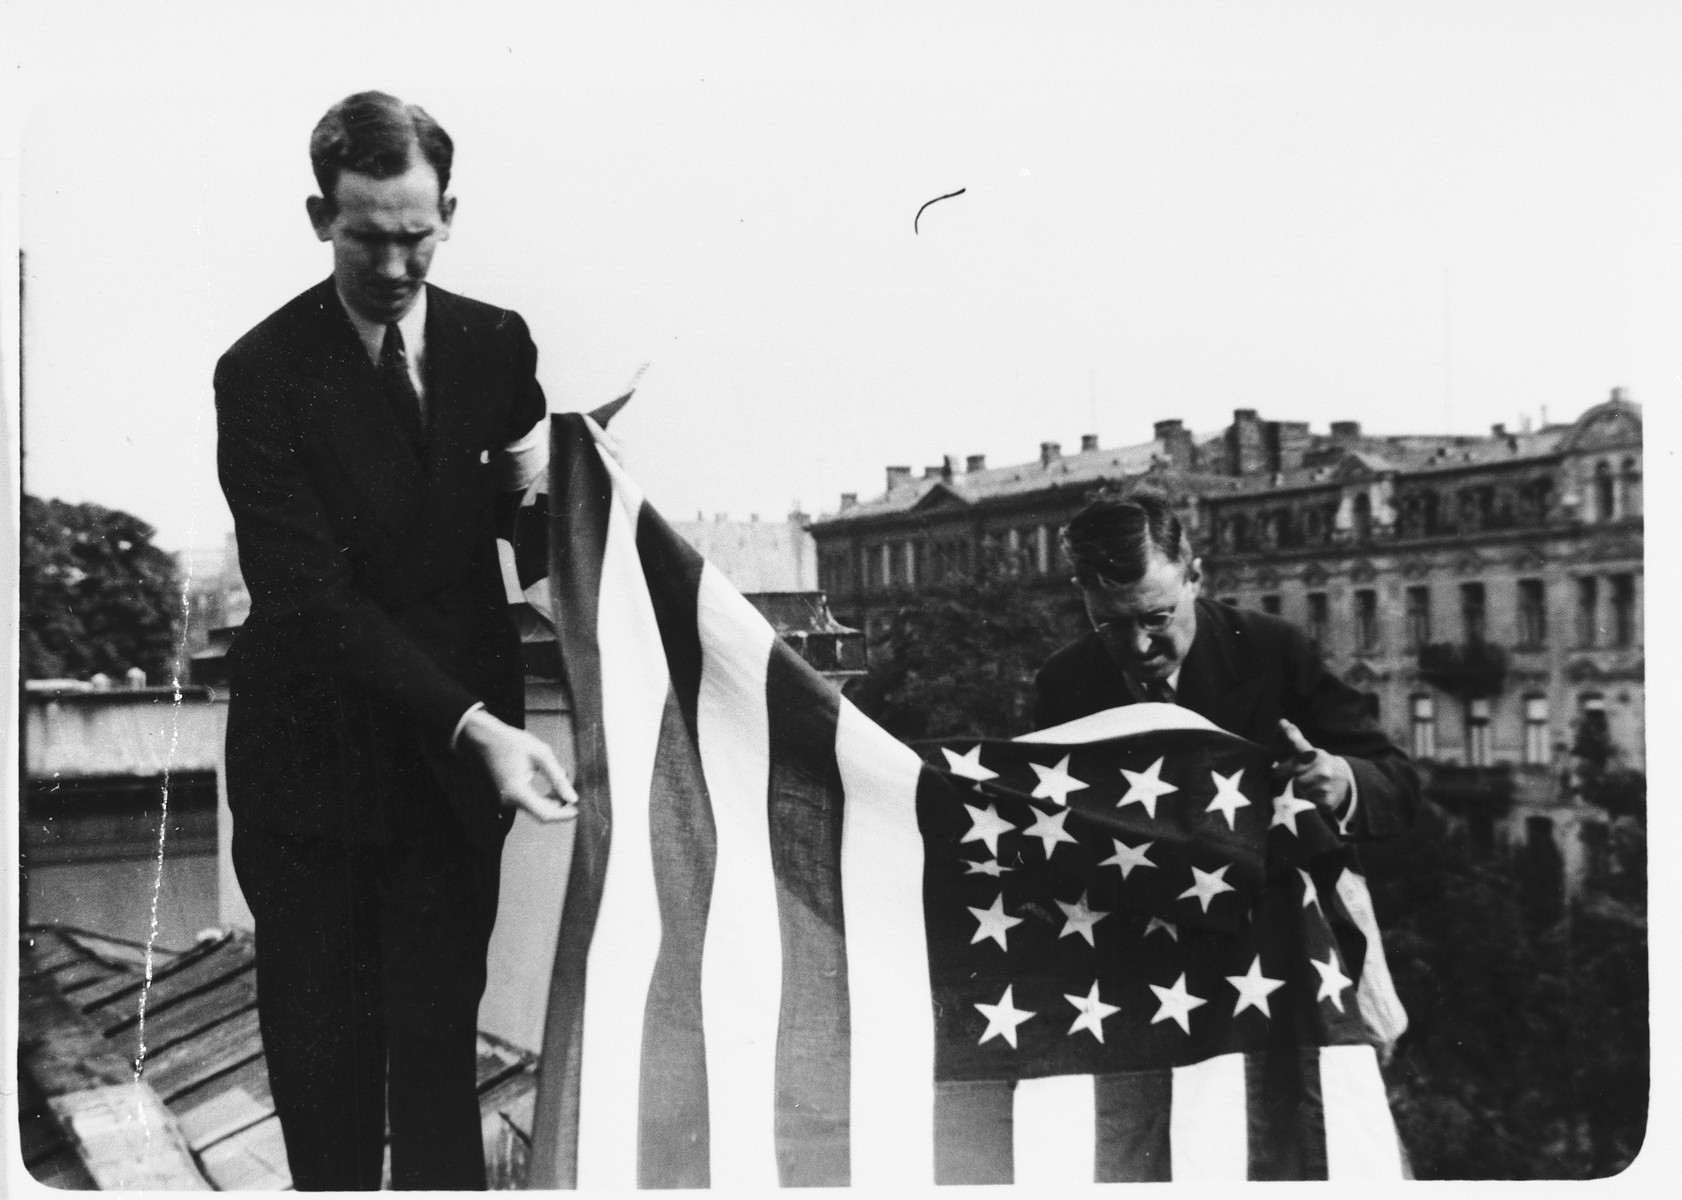 """Two American consular staff members hang an American flag from the roof of the embassy in Warsaw in anticipation of the arrival of German troops into the capital.    Photographer Julien Bryan describes the scene:  """"On September 12 [1939] word came over the radio that the German army was entering the city.  Out came all the available American flags.  The largest - ten by fifteen feet - was carried to the roof.  The other flags we suspended in front of the embassy and also at the rear, believing the German troops might approach from that direction.  Finally we placed one small flag over the dugout in the garden.  But the Germans did not come that day, nor did they come while we were in Warsaw."""" [Source: Bryan, Julien.  """"Warsaw 1939 Siege; 1959 Warsaw Revisited.  Warsaw, Polonia, 1959, p. 31.]"""